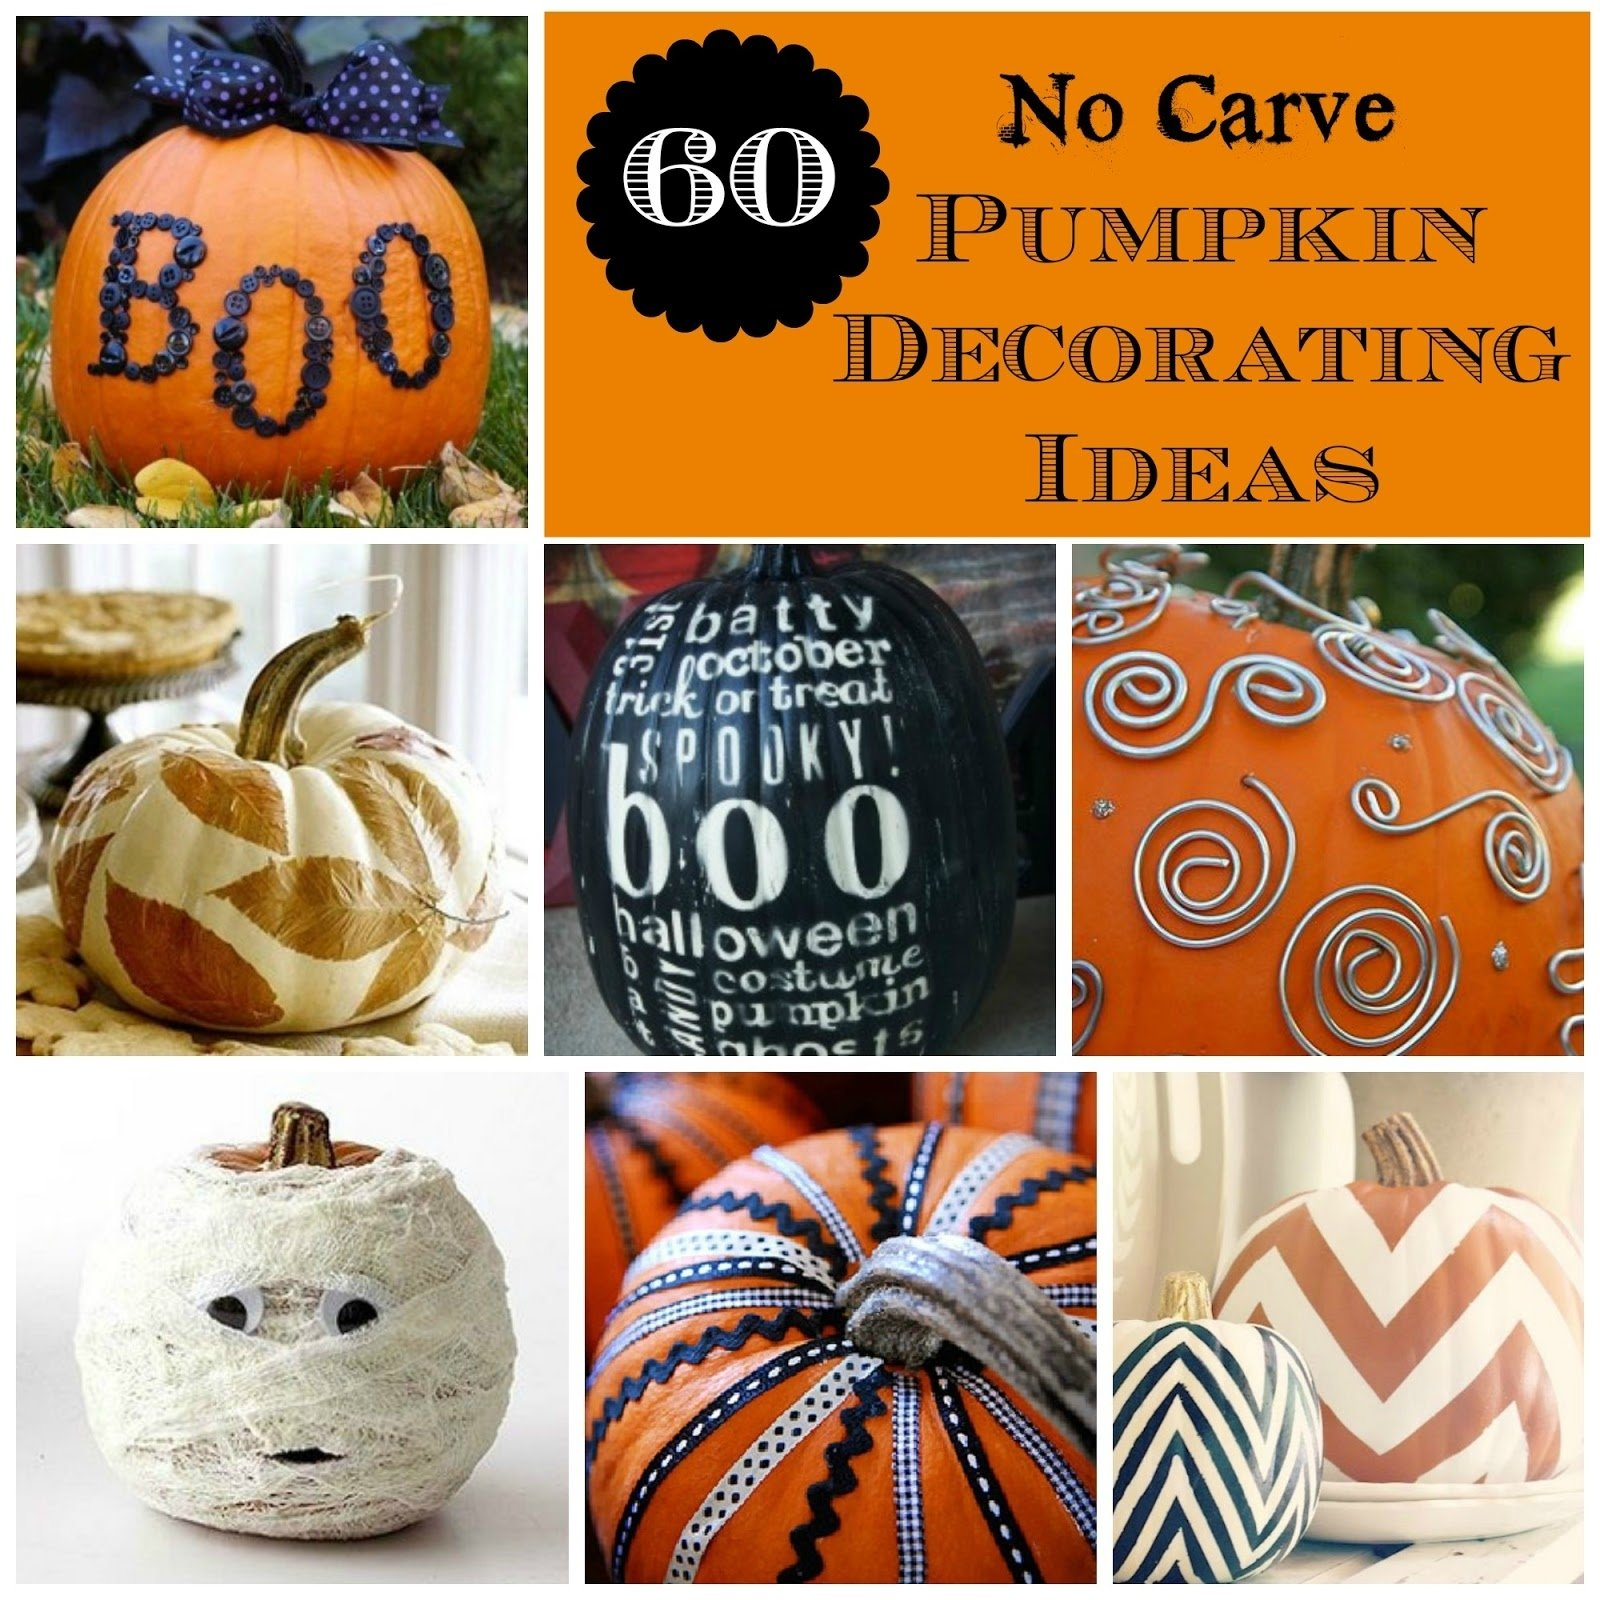 10 Beautiful Pumpkin Decorating Ideas Without Carving For Kids all things katie marie 60 no carve pumpkin decorating ideas 1 2020